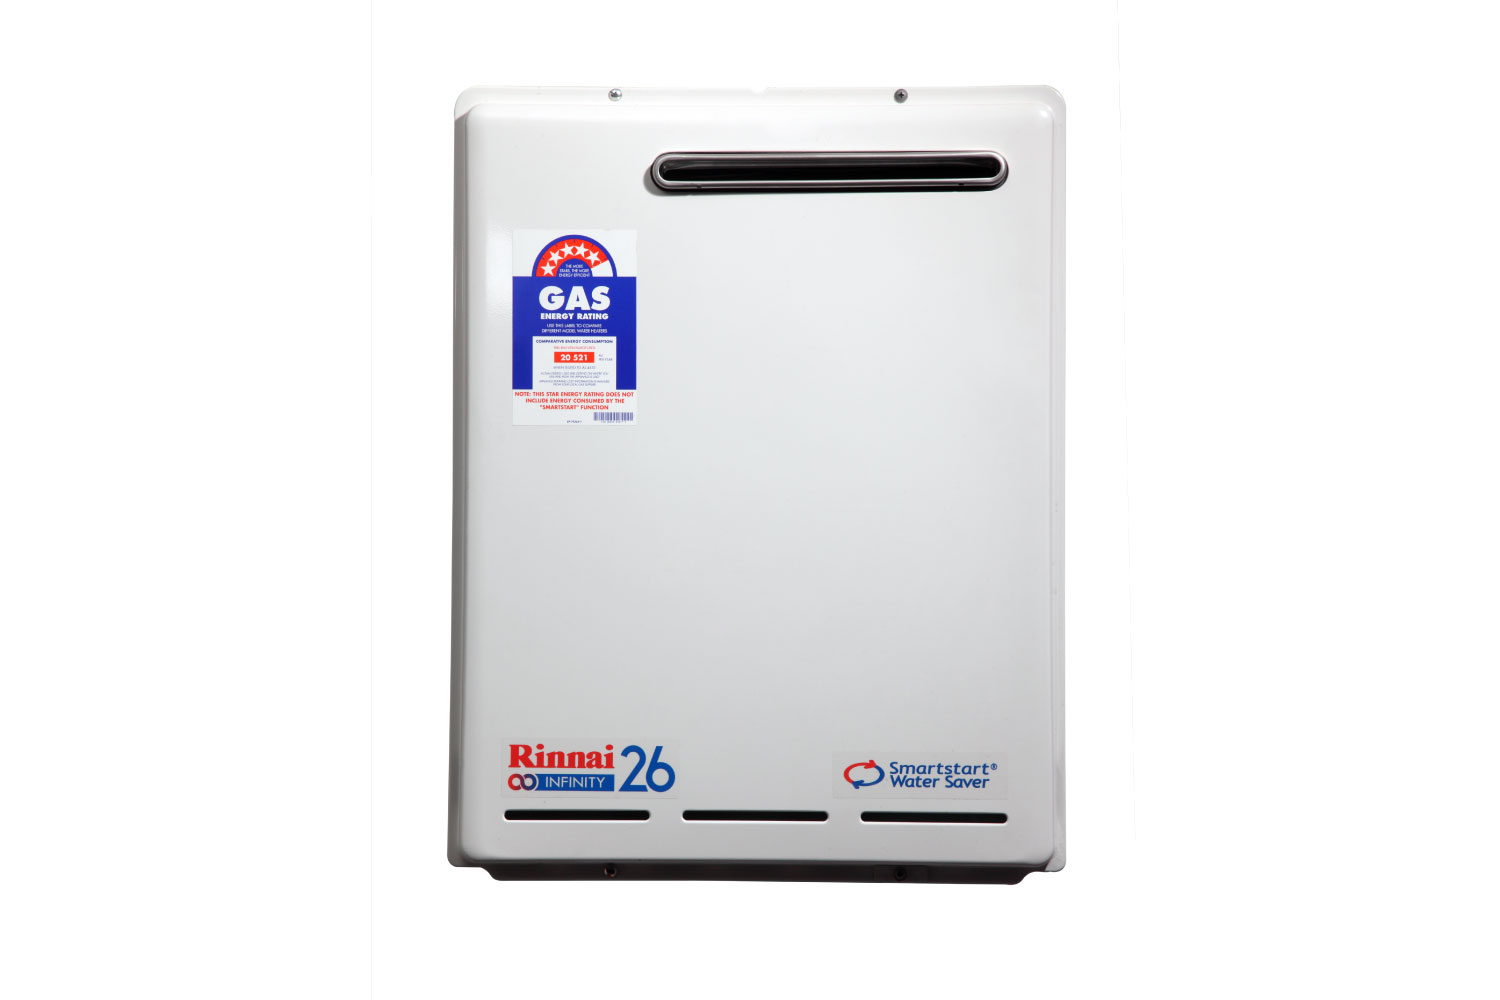 Infinity 26 External Gas Water Heater With Pump Rinnai